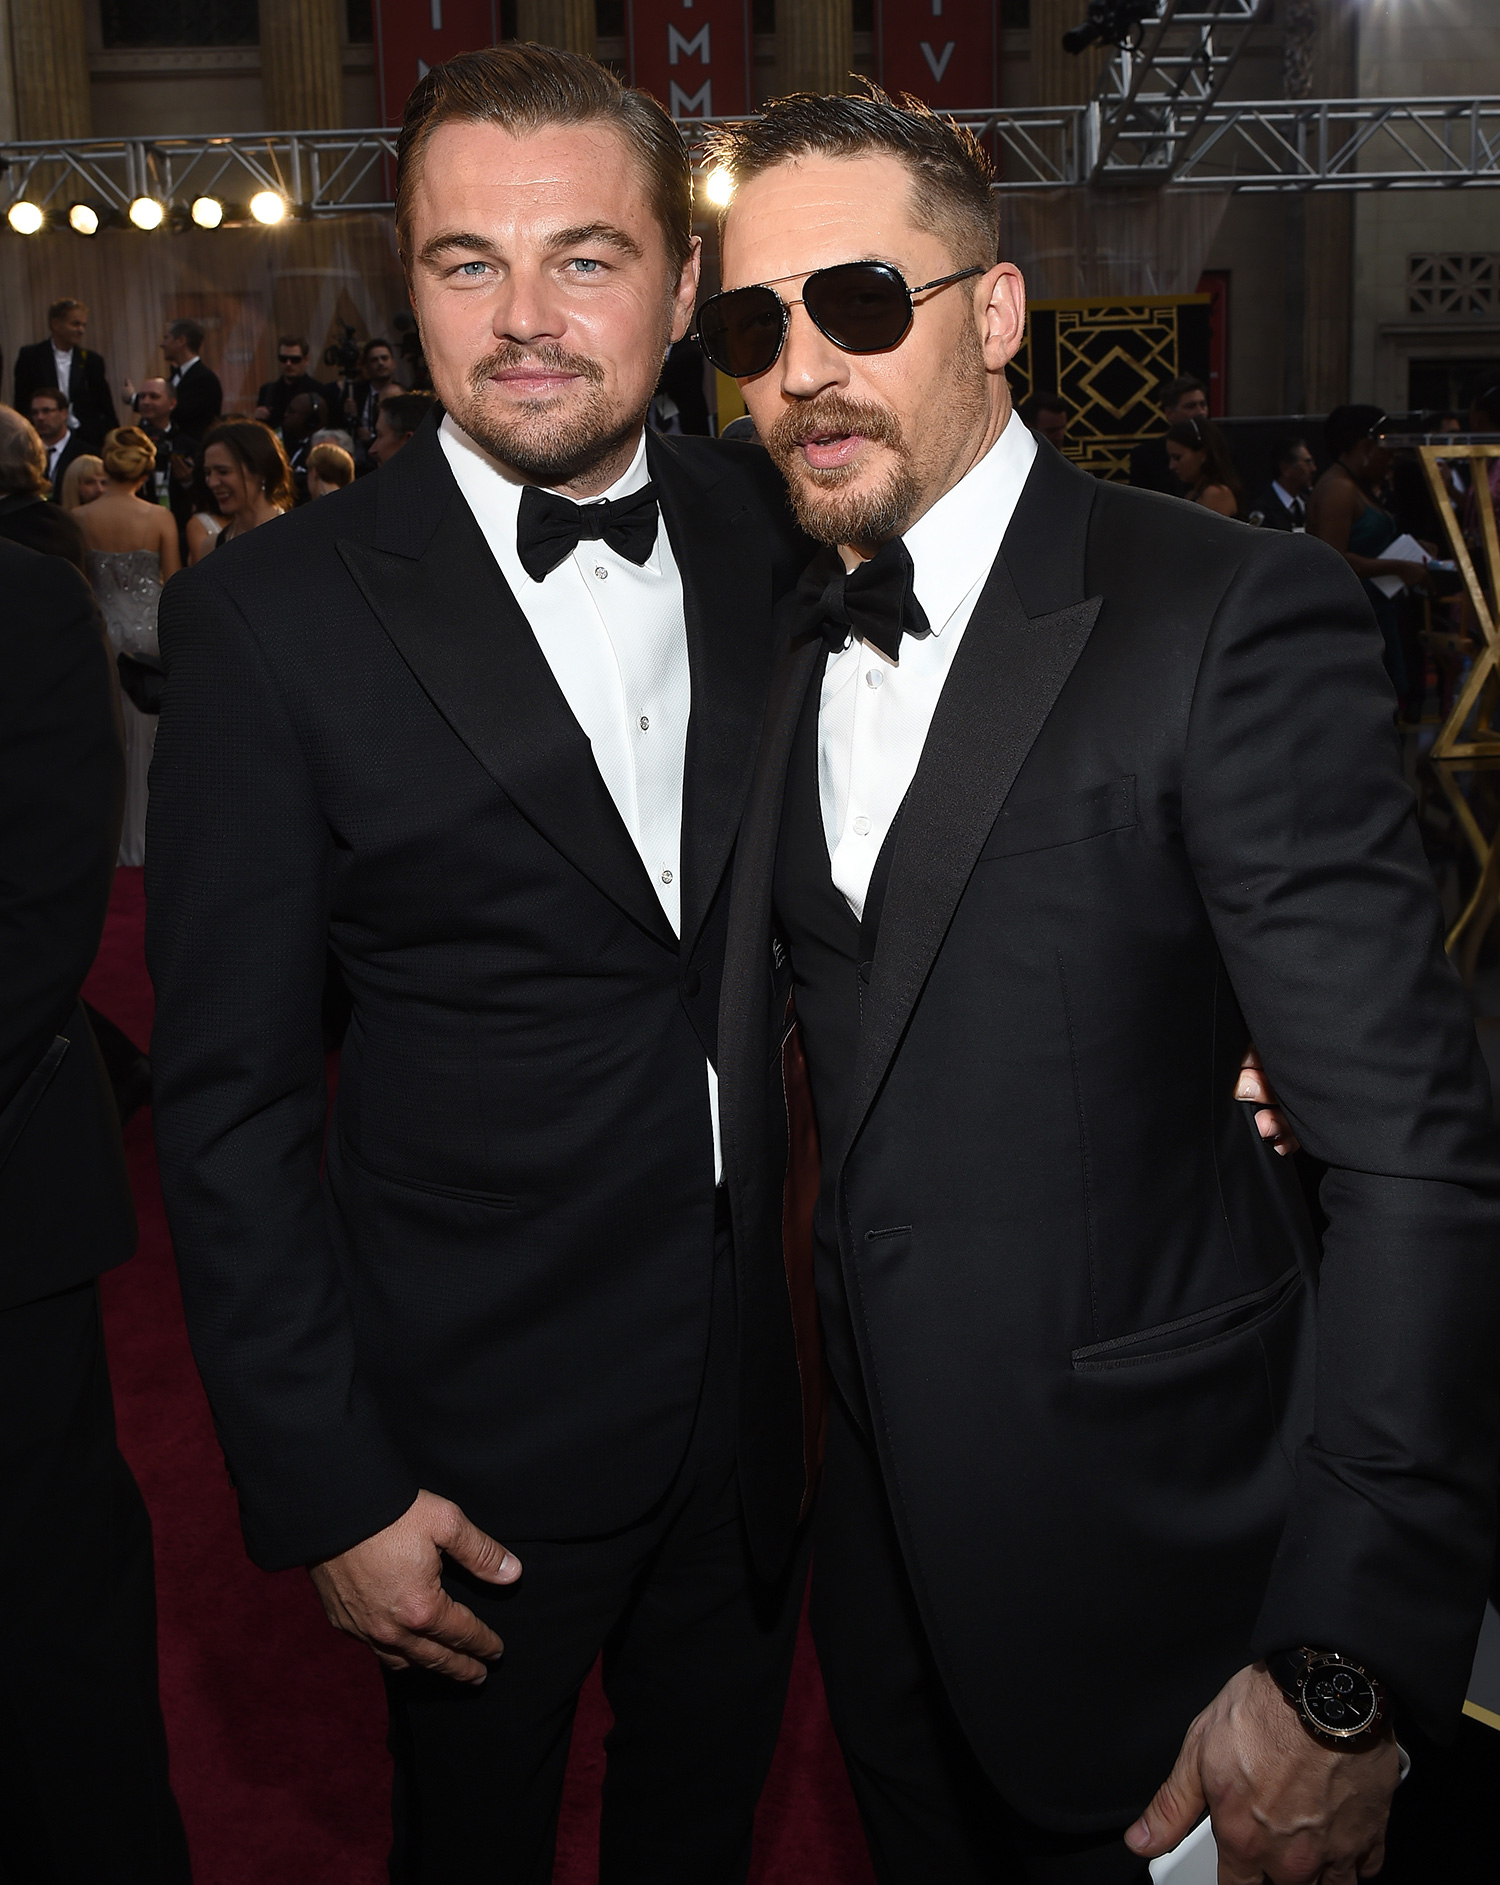 Tom Hardy,Best Supporting Actor Nominee at the Oscars wearing Gucci